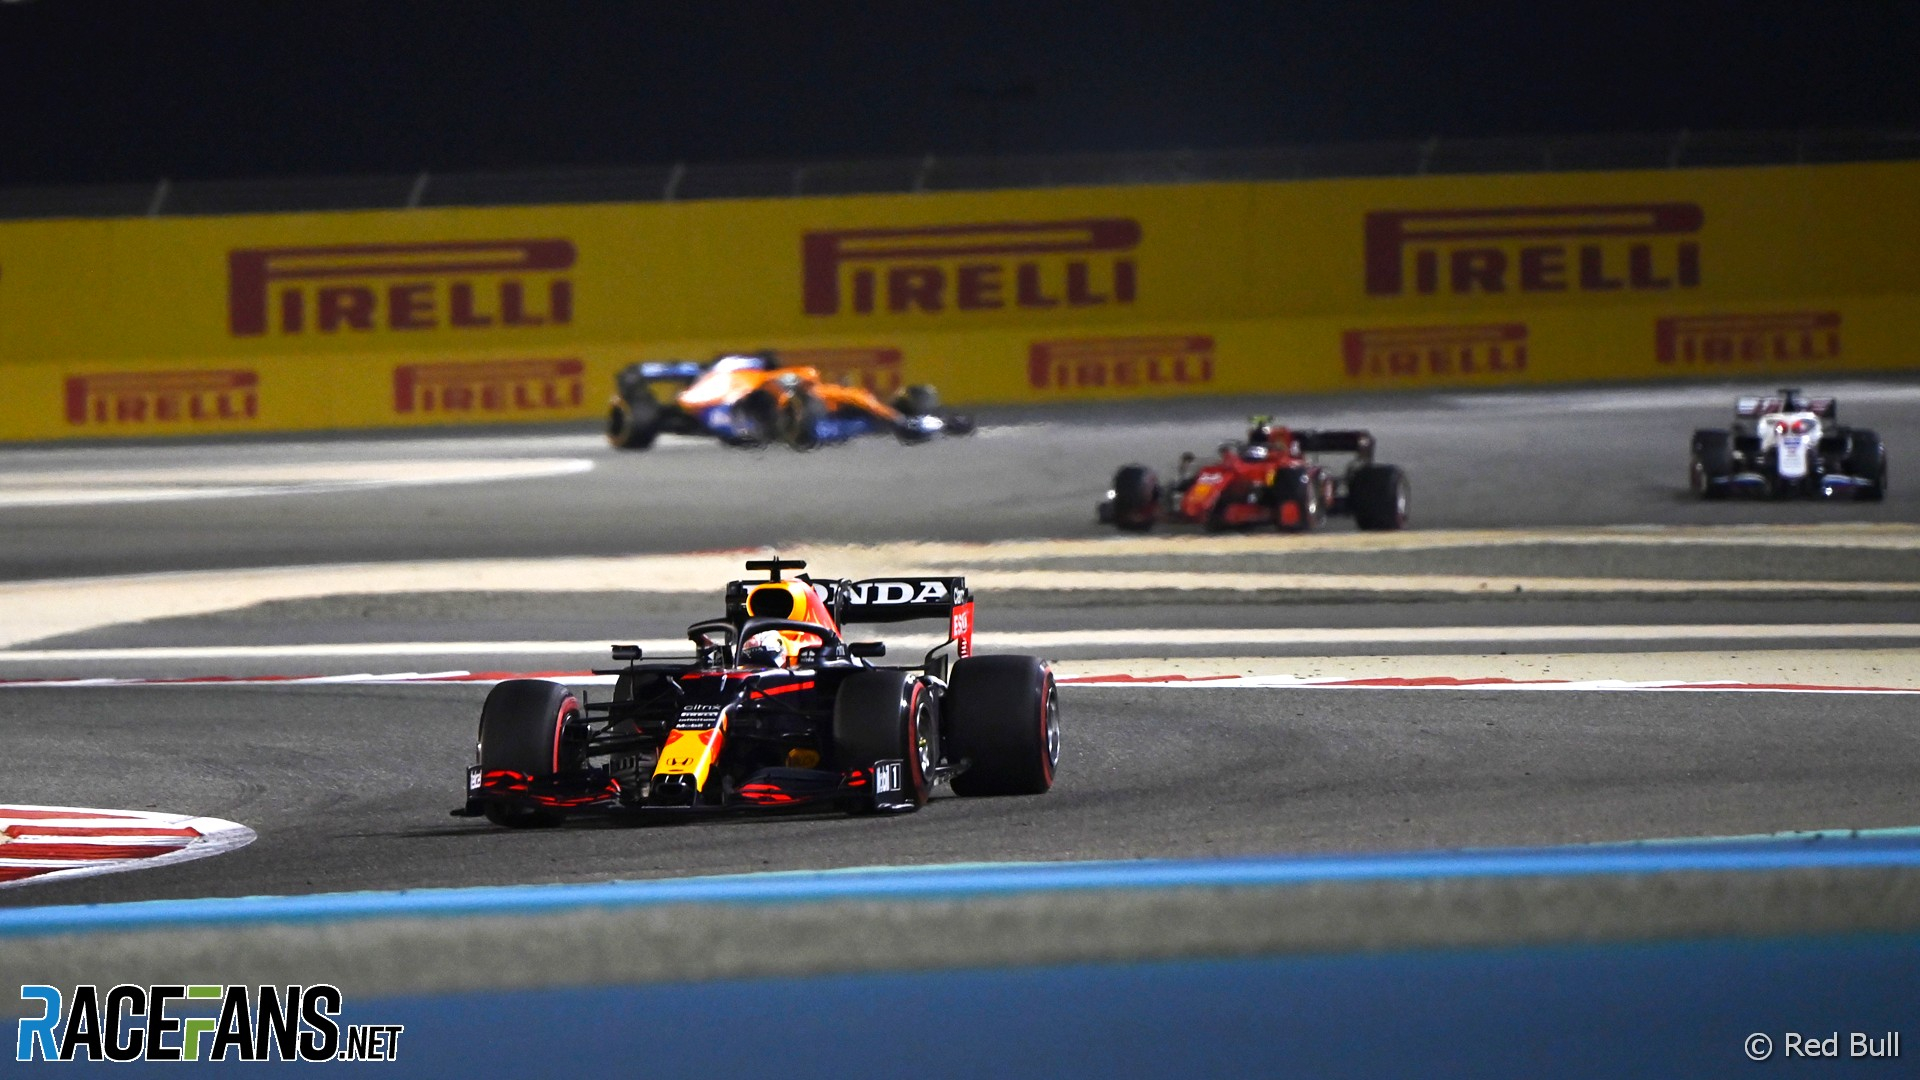 20 questions for the 2021 Formula 1 season